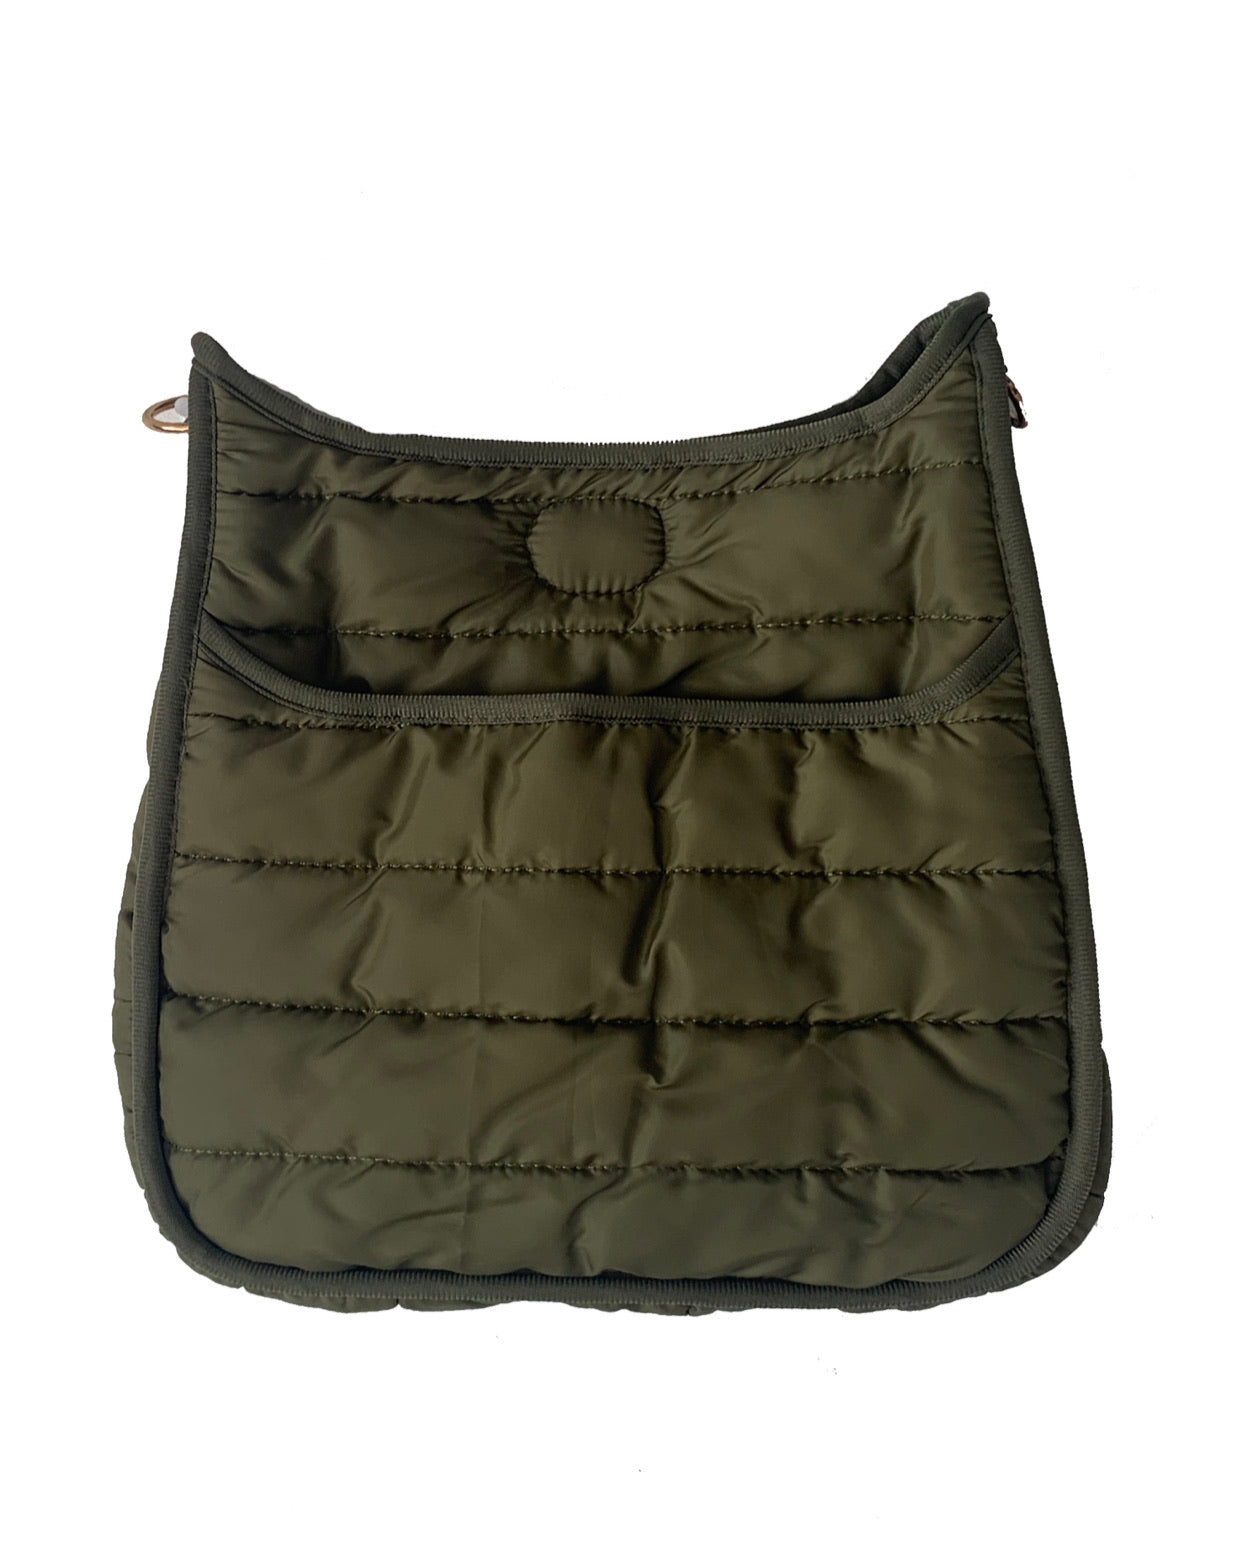 Puffy Messenger Bag (STRAP SOLD SEPARATELY)